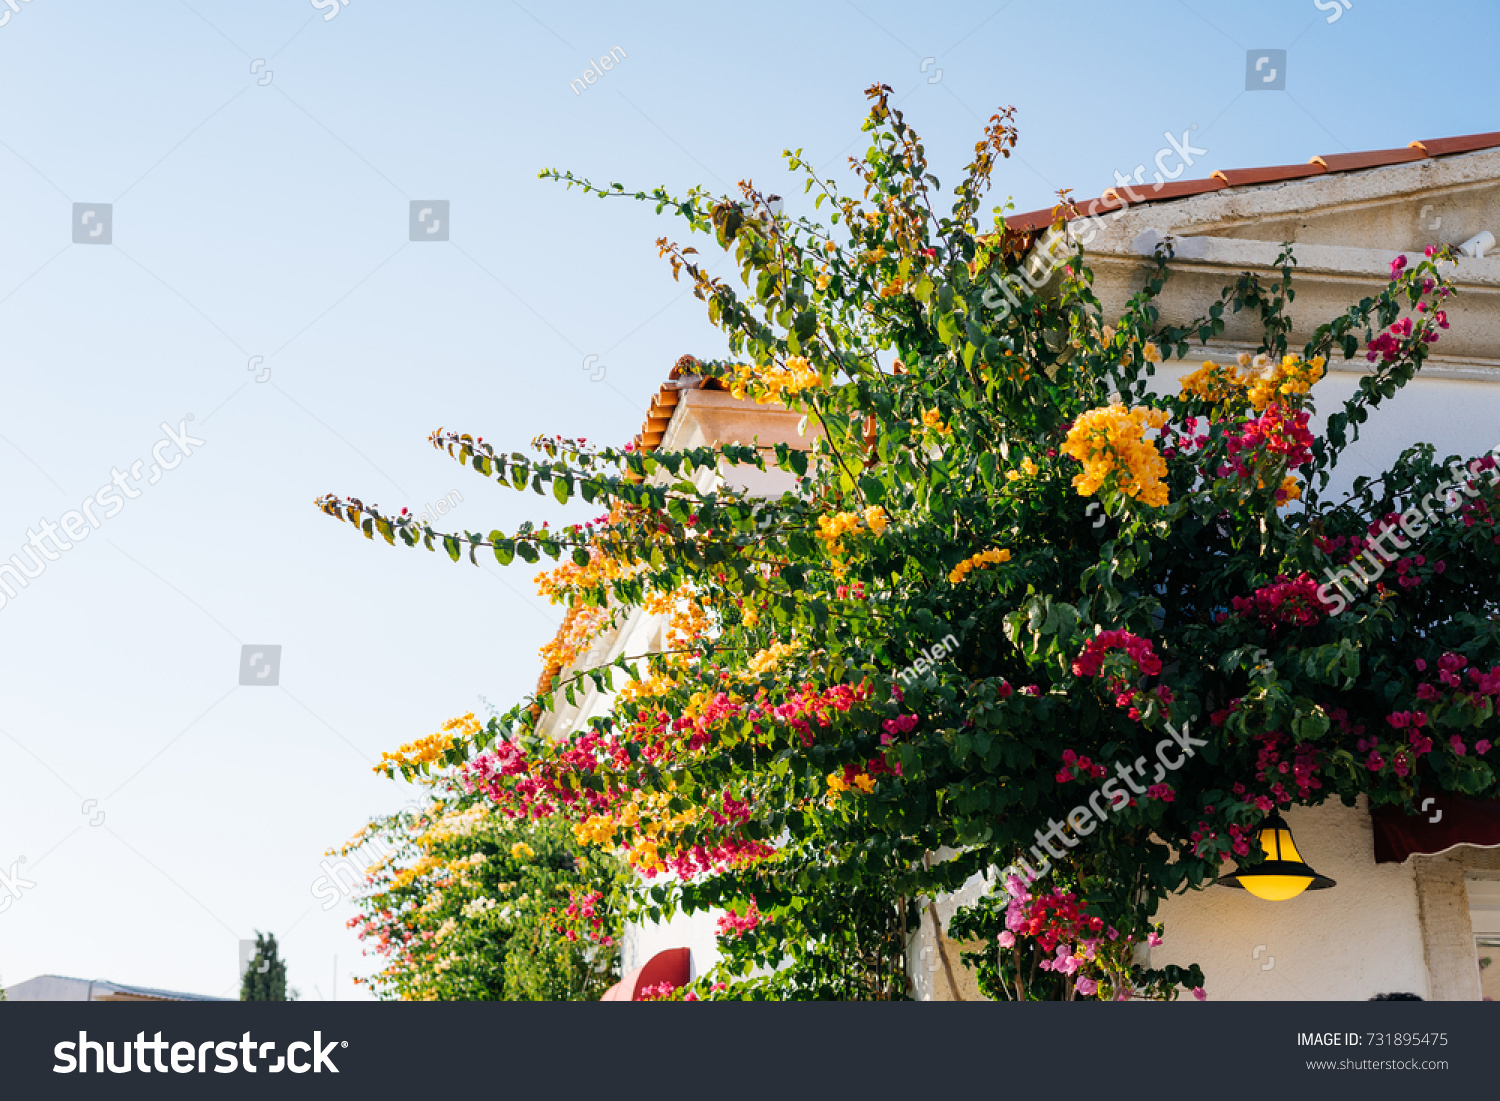 Roof Flowers Beautiful Tree Colorful Flowers Stock Photo Edit Now